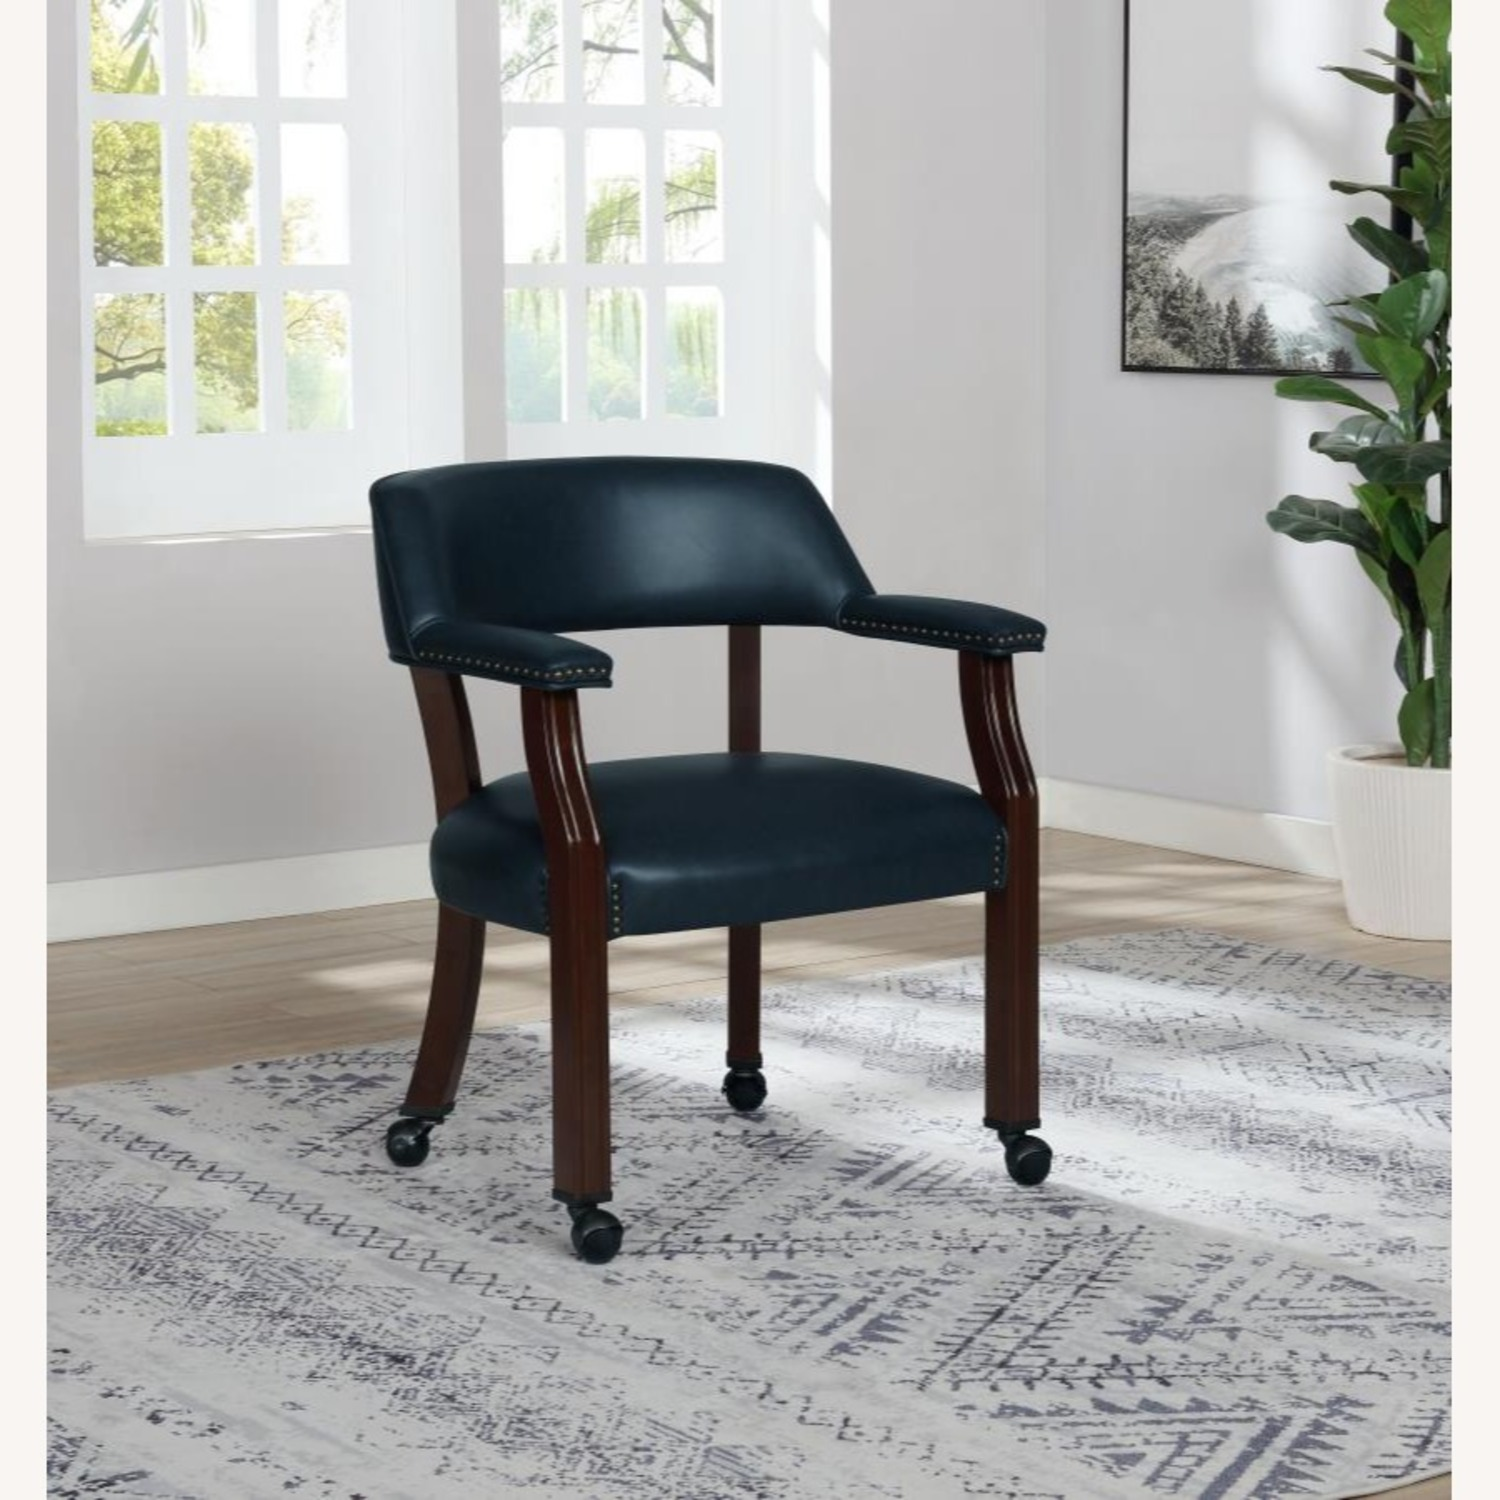 Guest Chair In Blue Leather W/ Wheeled Legs - image-2